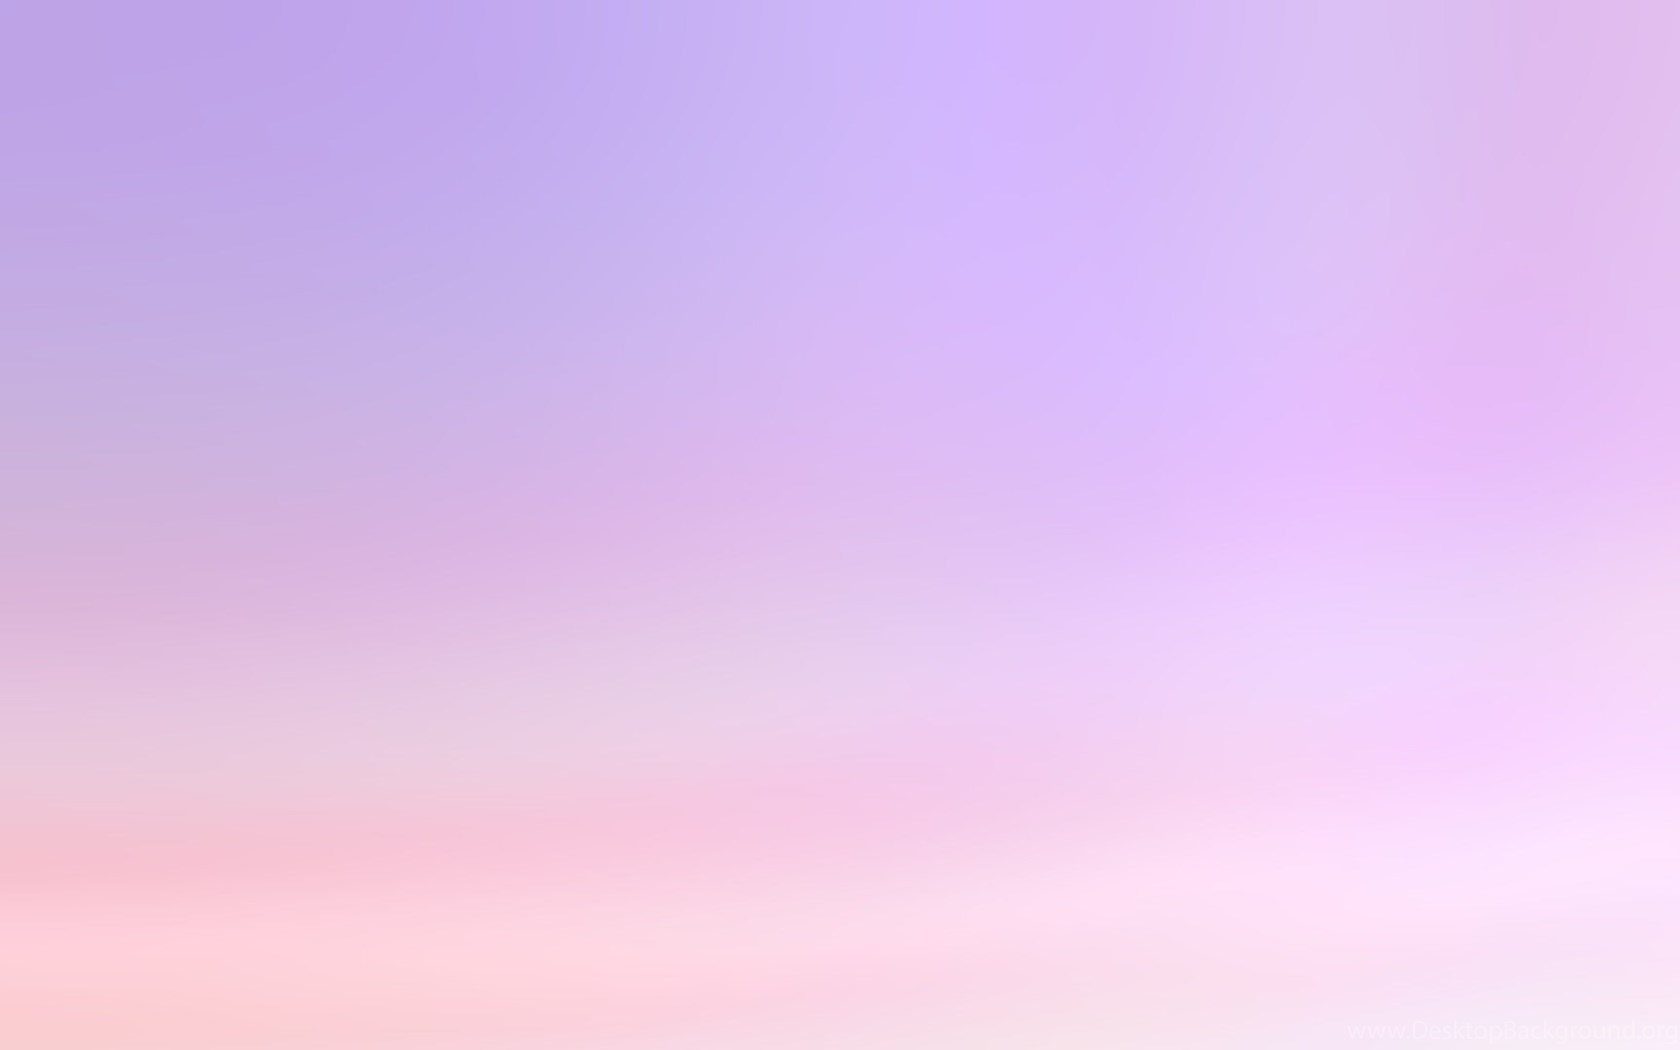 Pastel Gradient Backgrounds Tumblr Wallpaper. Desktop ...